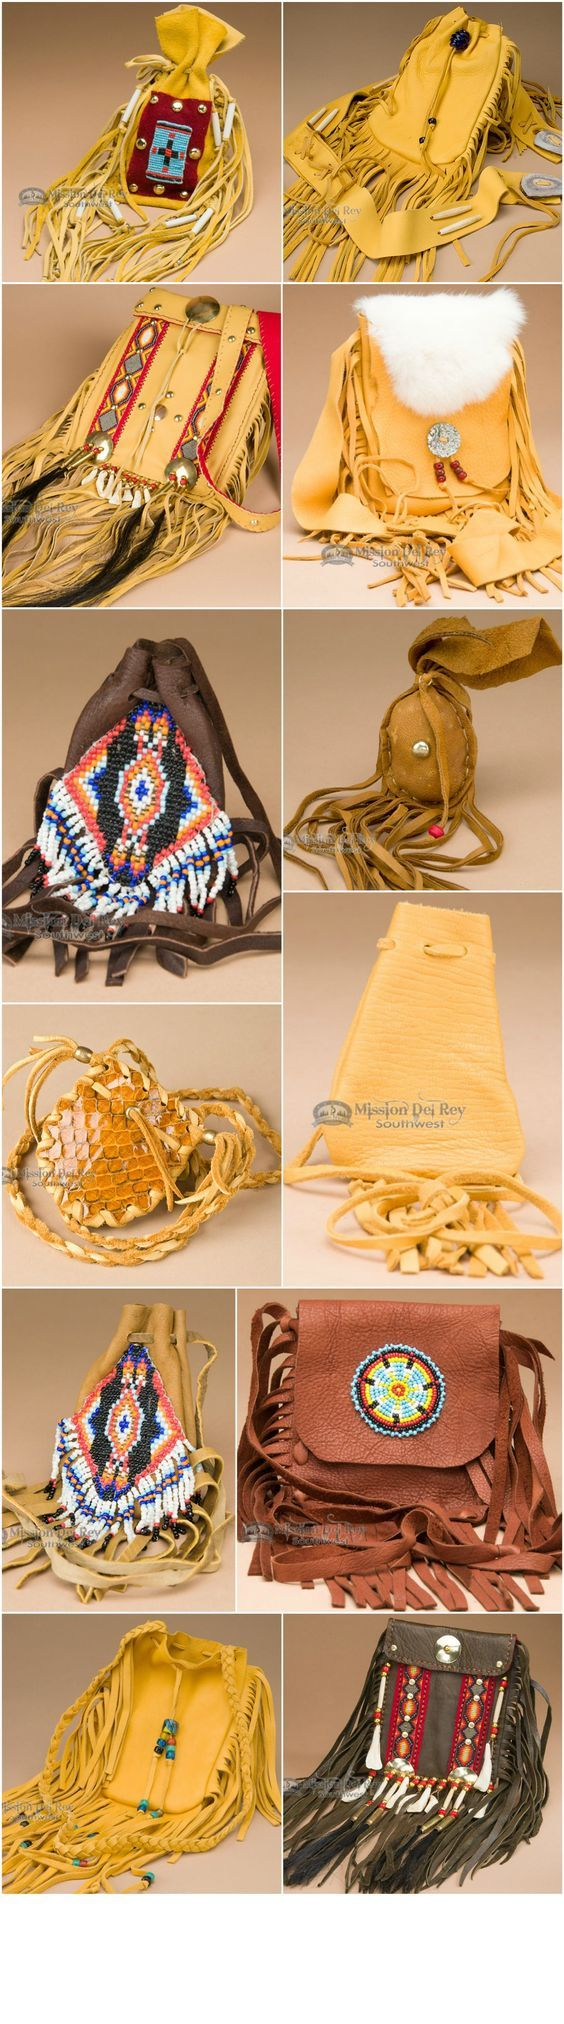 Native American medicine bags continue to be a popular part of Native life. Leather medicine pouches made with soft deer hide buckskin, elk or buffalo have become the most prevalent among American Indians.